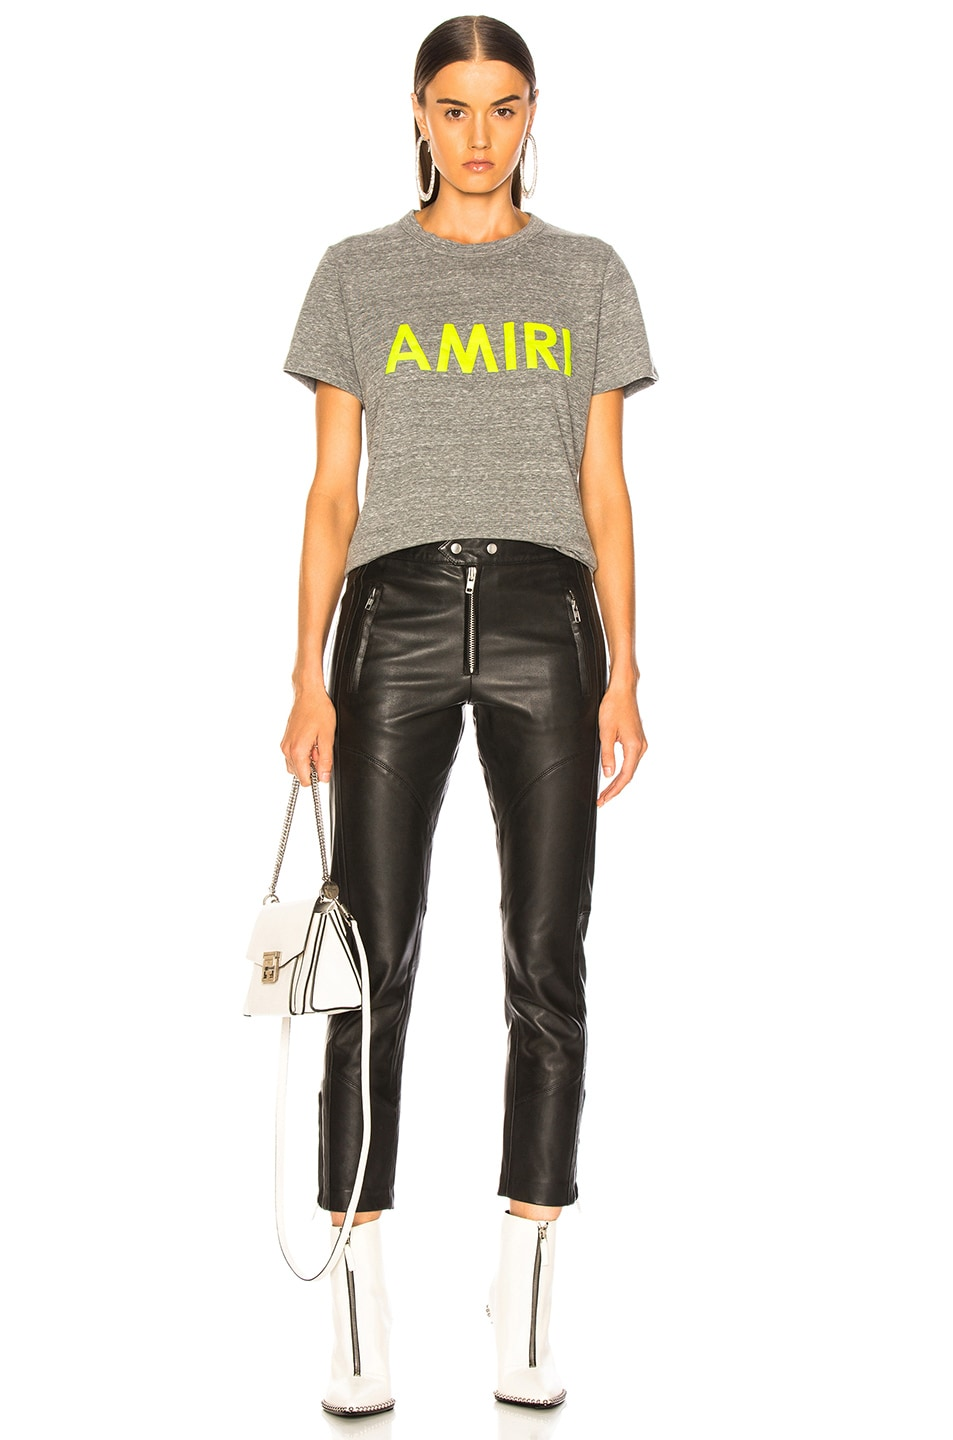 Image 5 of Amiri Tee in Heather Grey & Neon Yellow